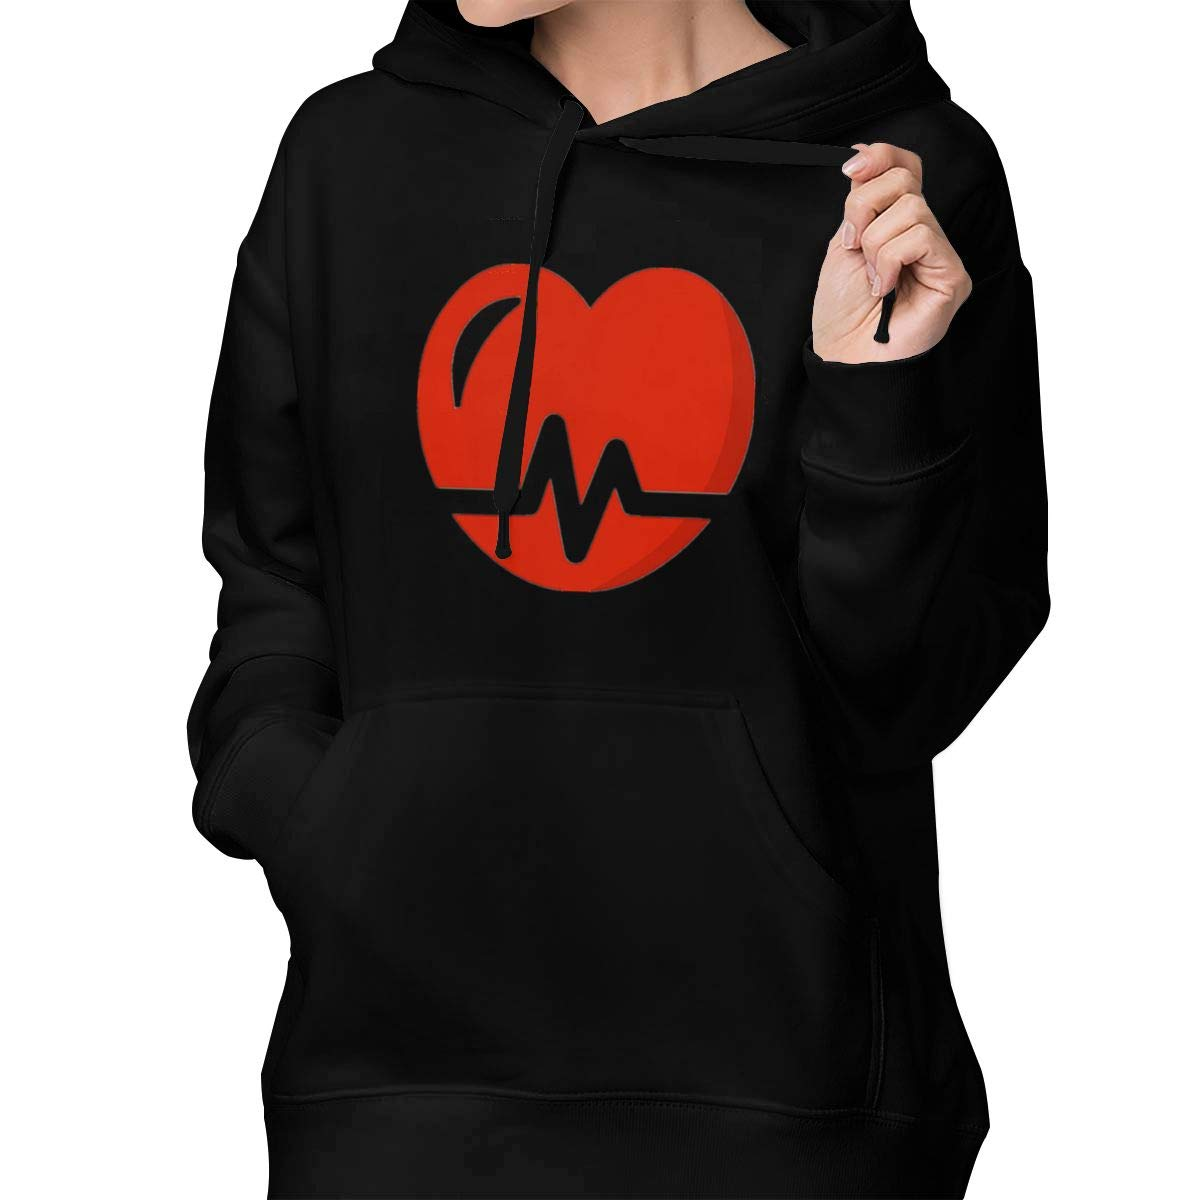 Heartbeat Womens Casual Zip-up Sweatshirts Jackets Coats with Front Pocket